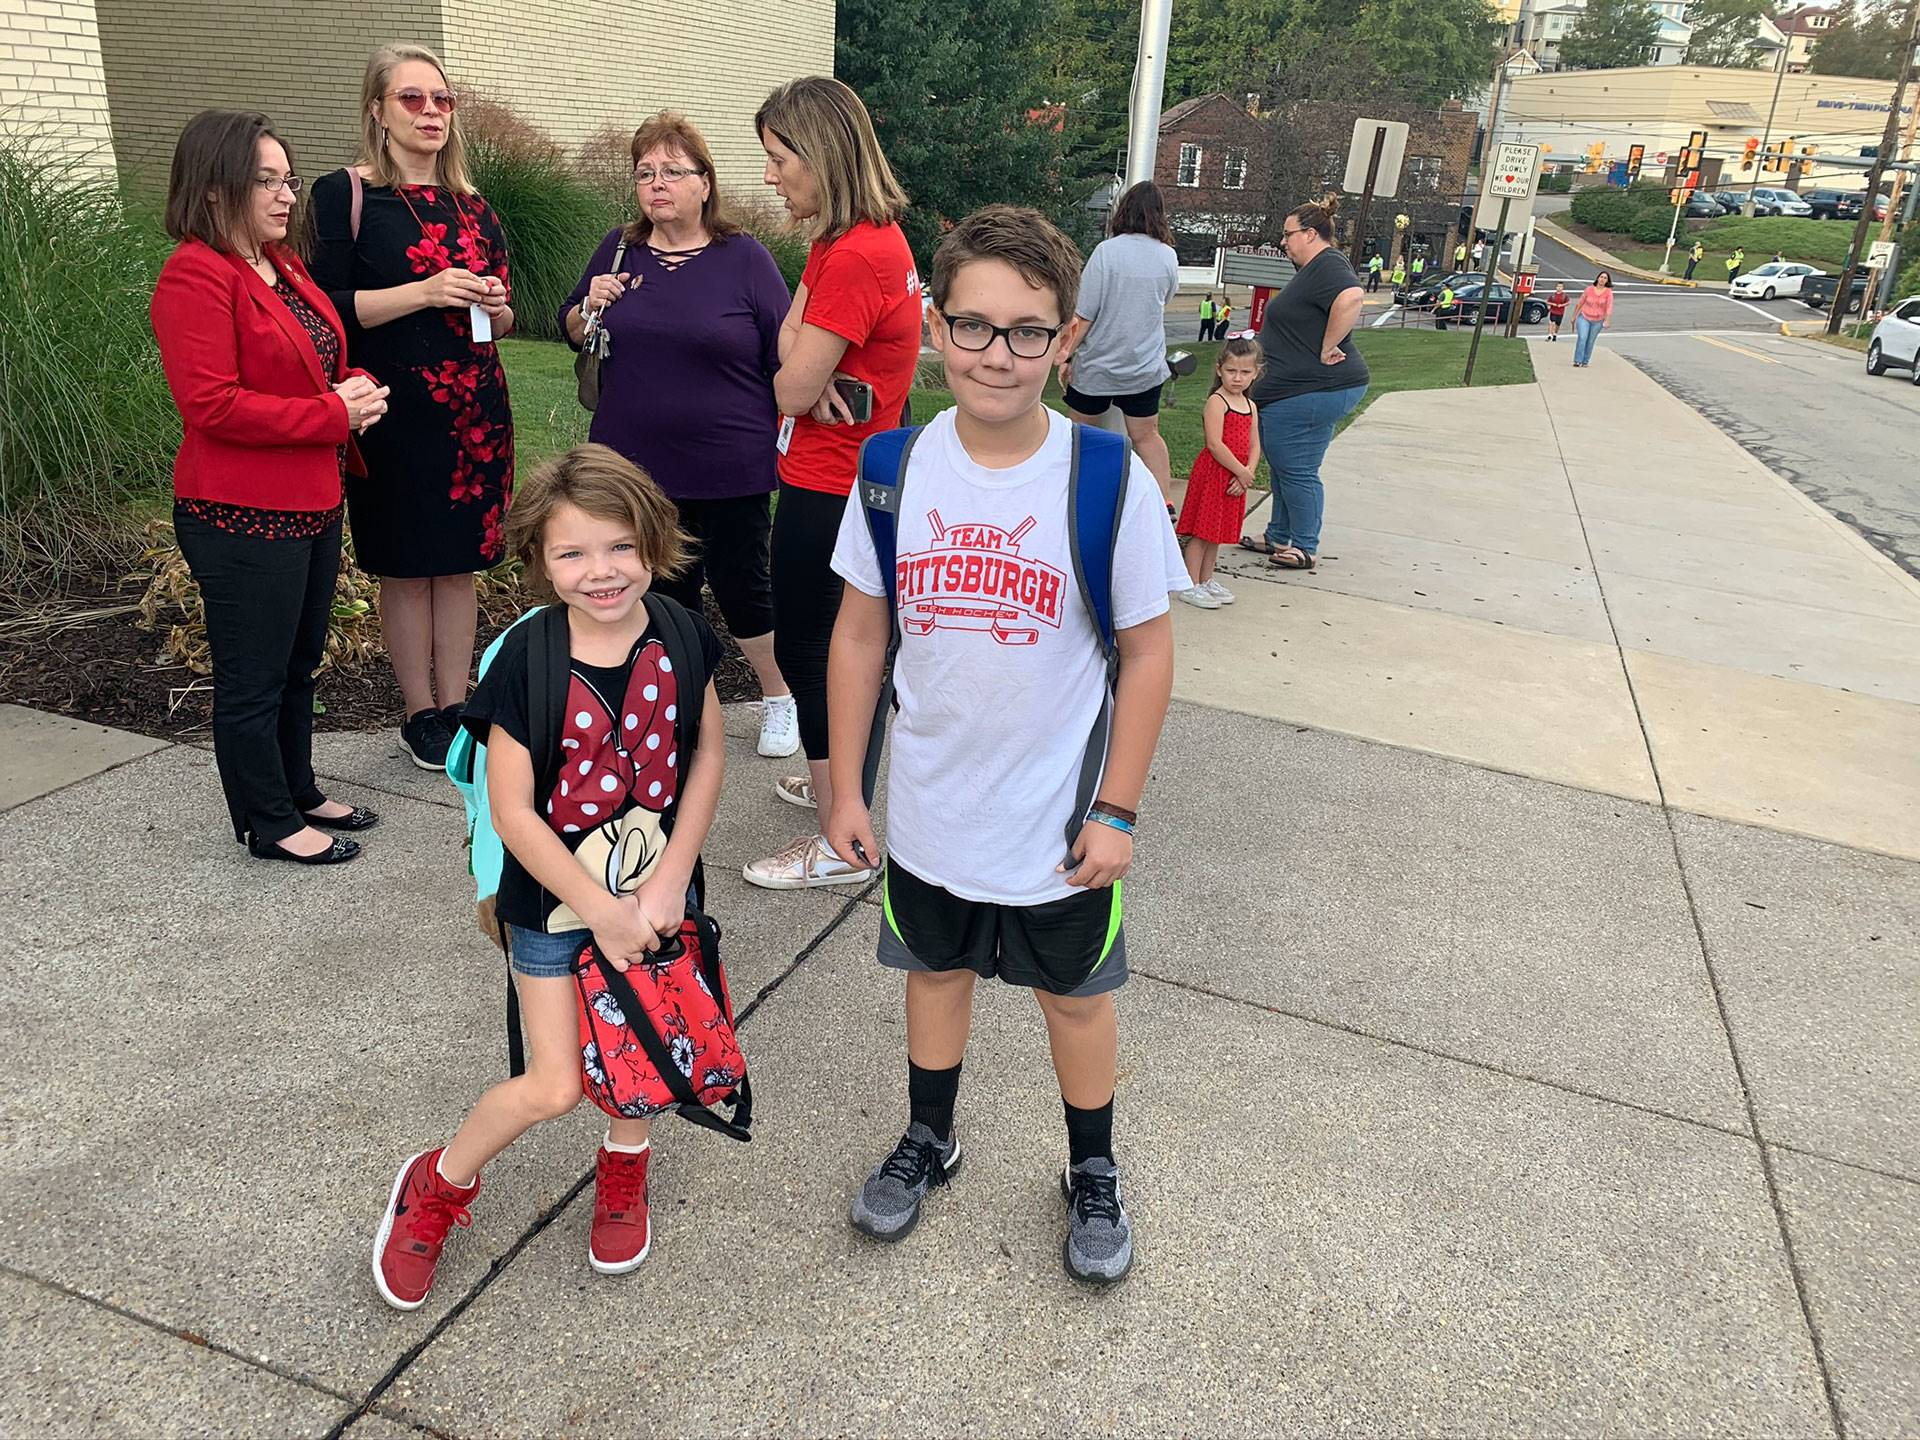 West View students walking to school on International Walk to School Day on Oct. 2, 2019